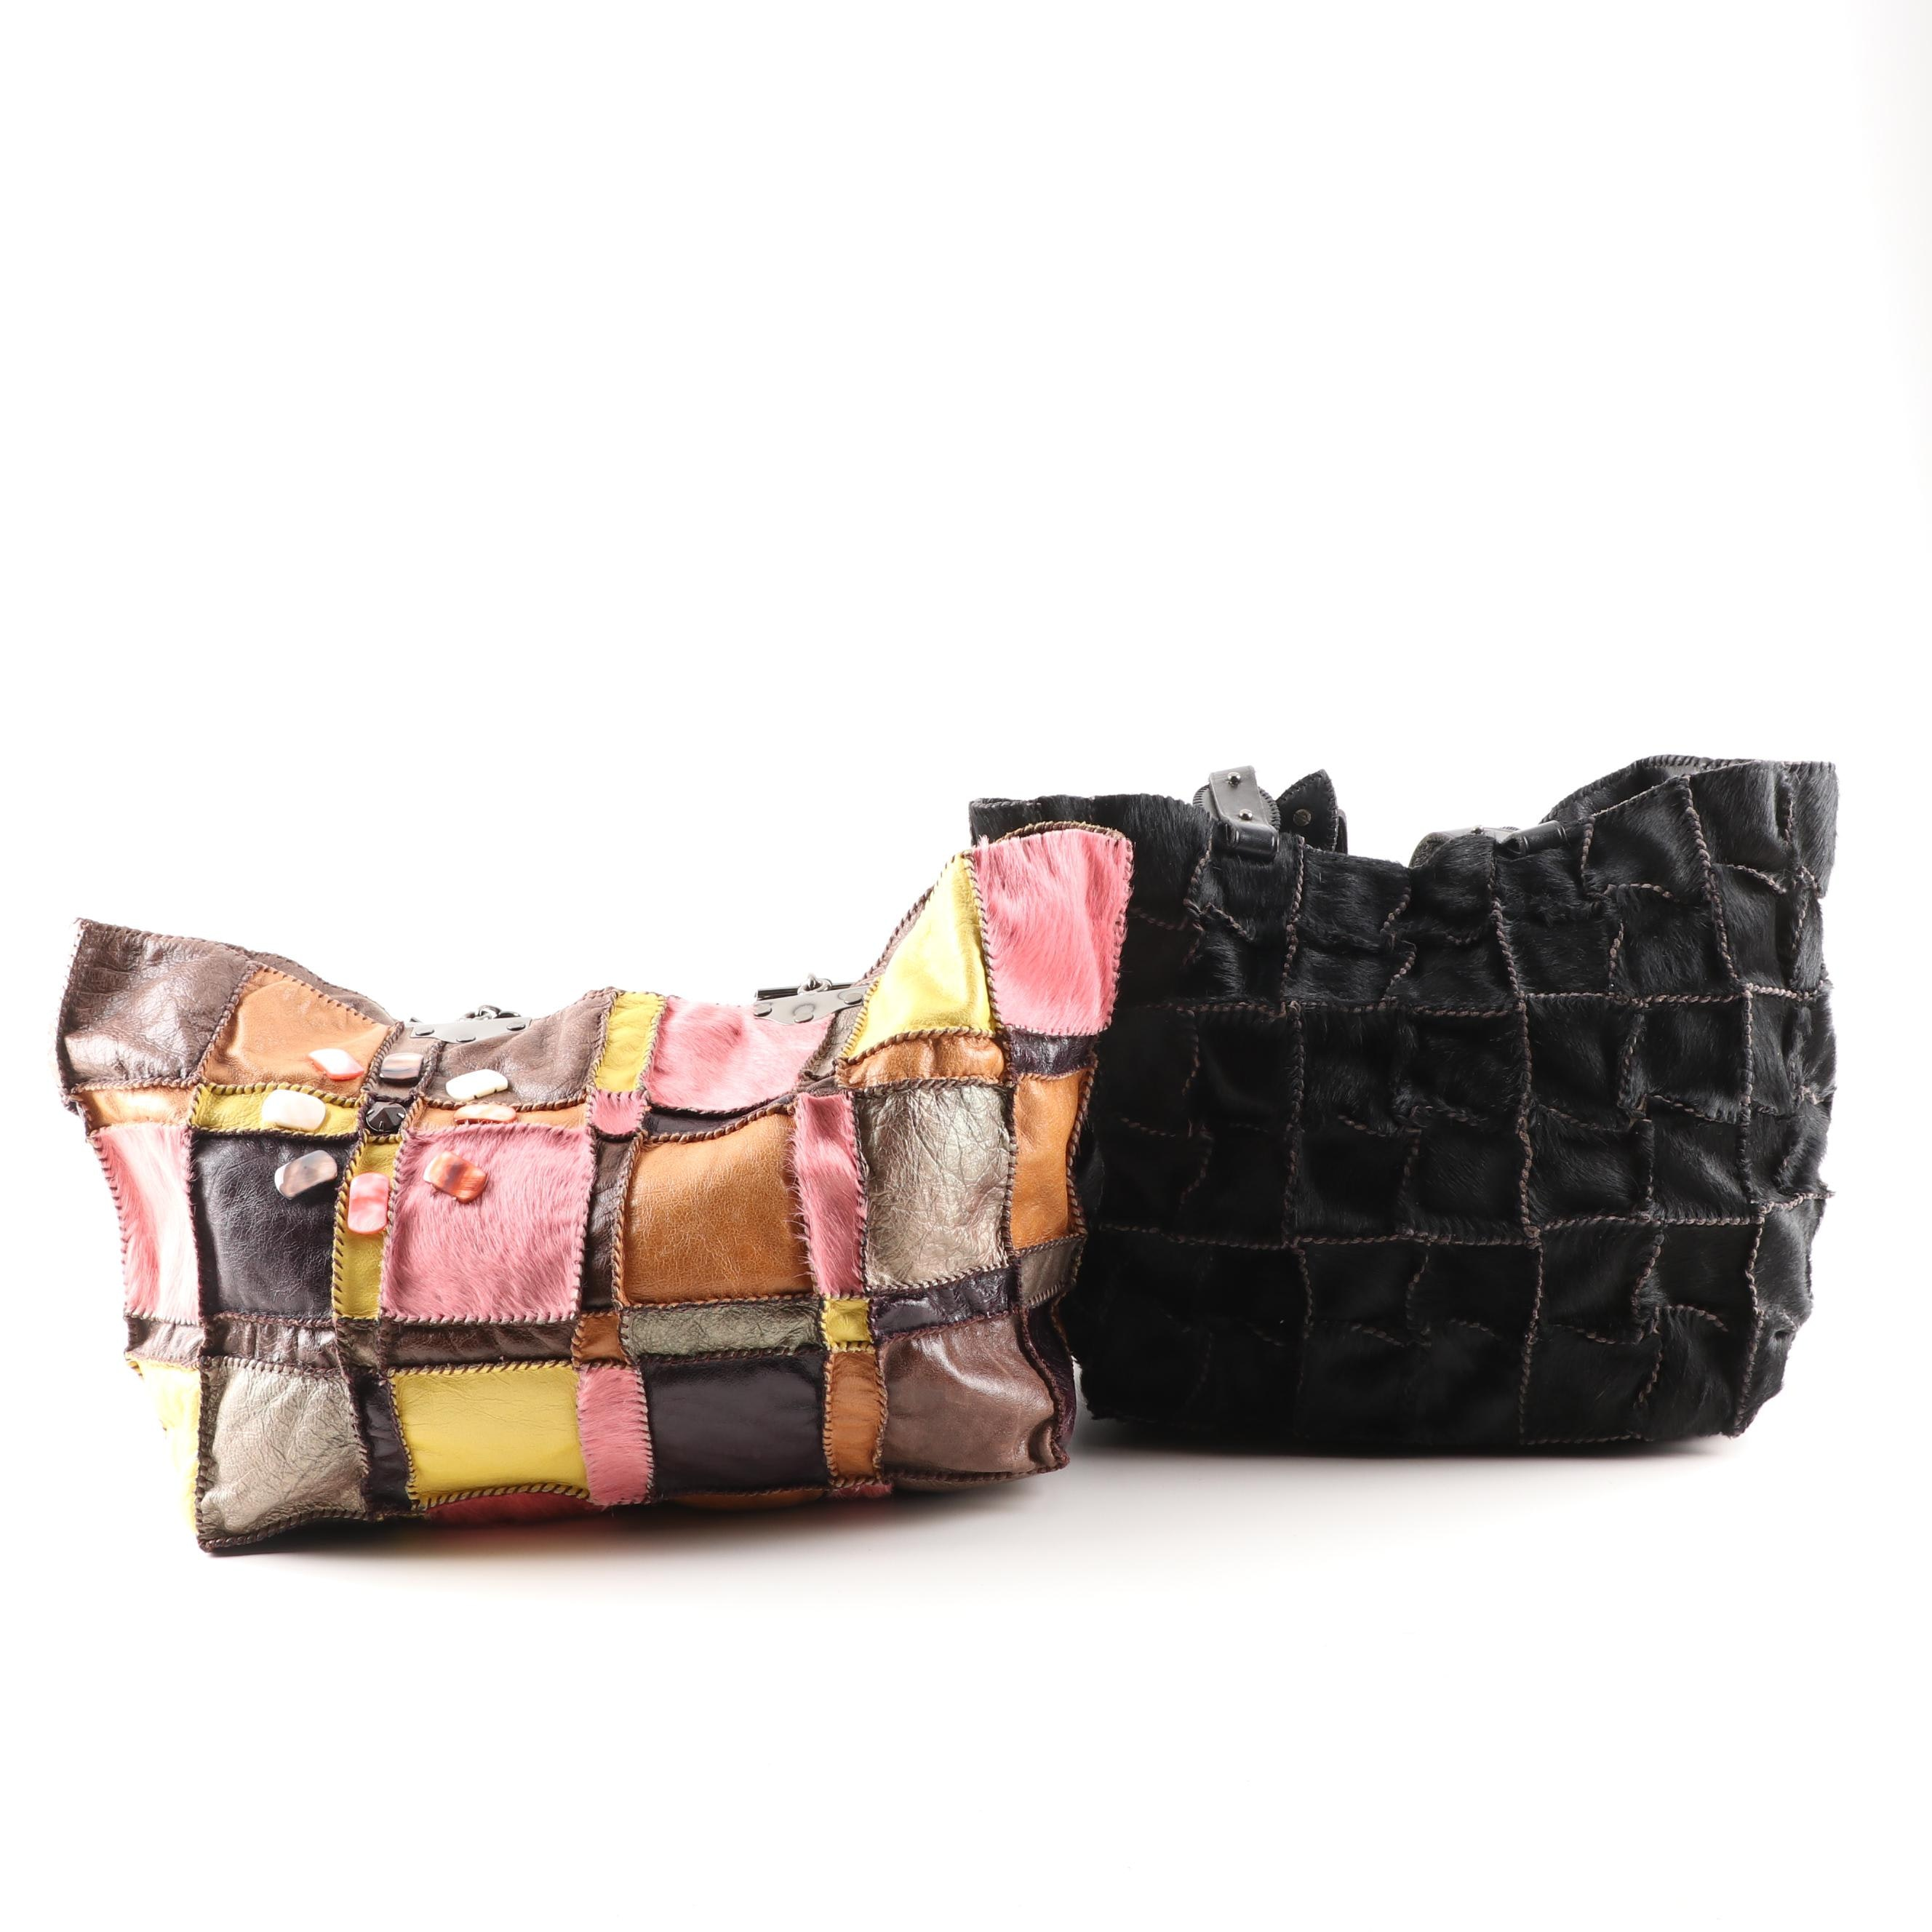 Jamin Puech Patchwork Calf Hair and Leather Tote Bags